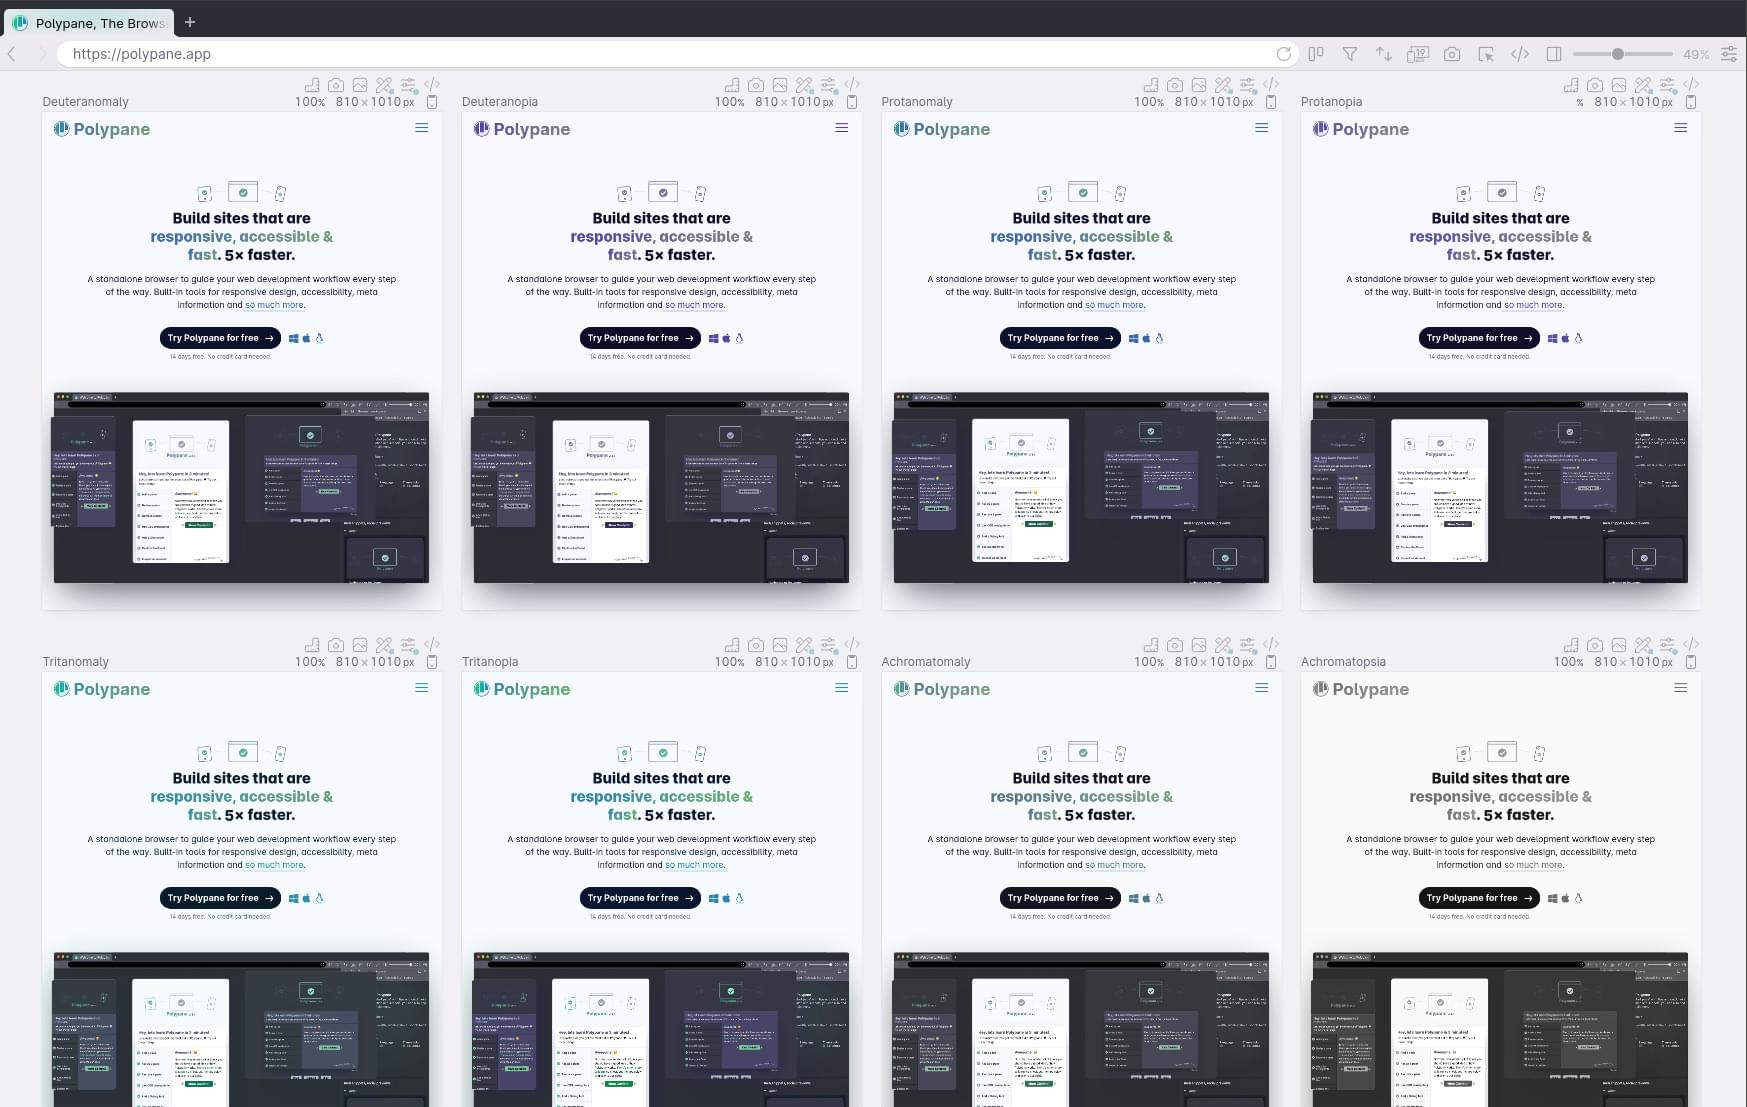 A visual showing multiple test results for a page based on impairment